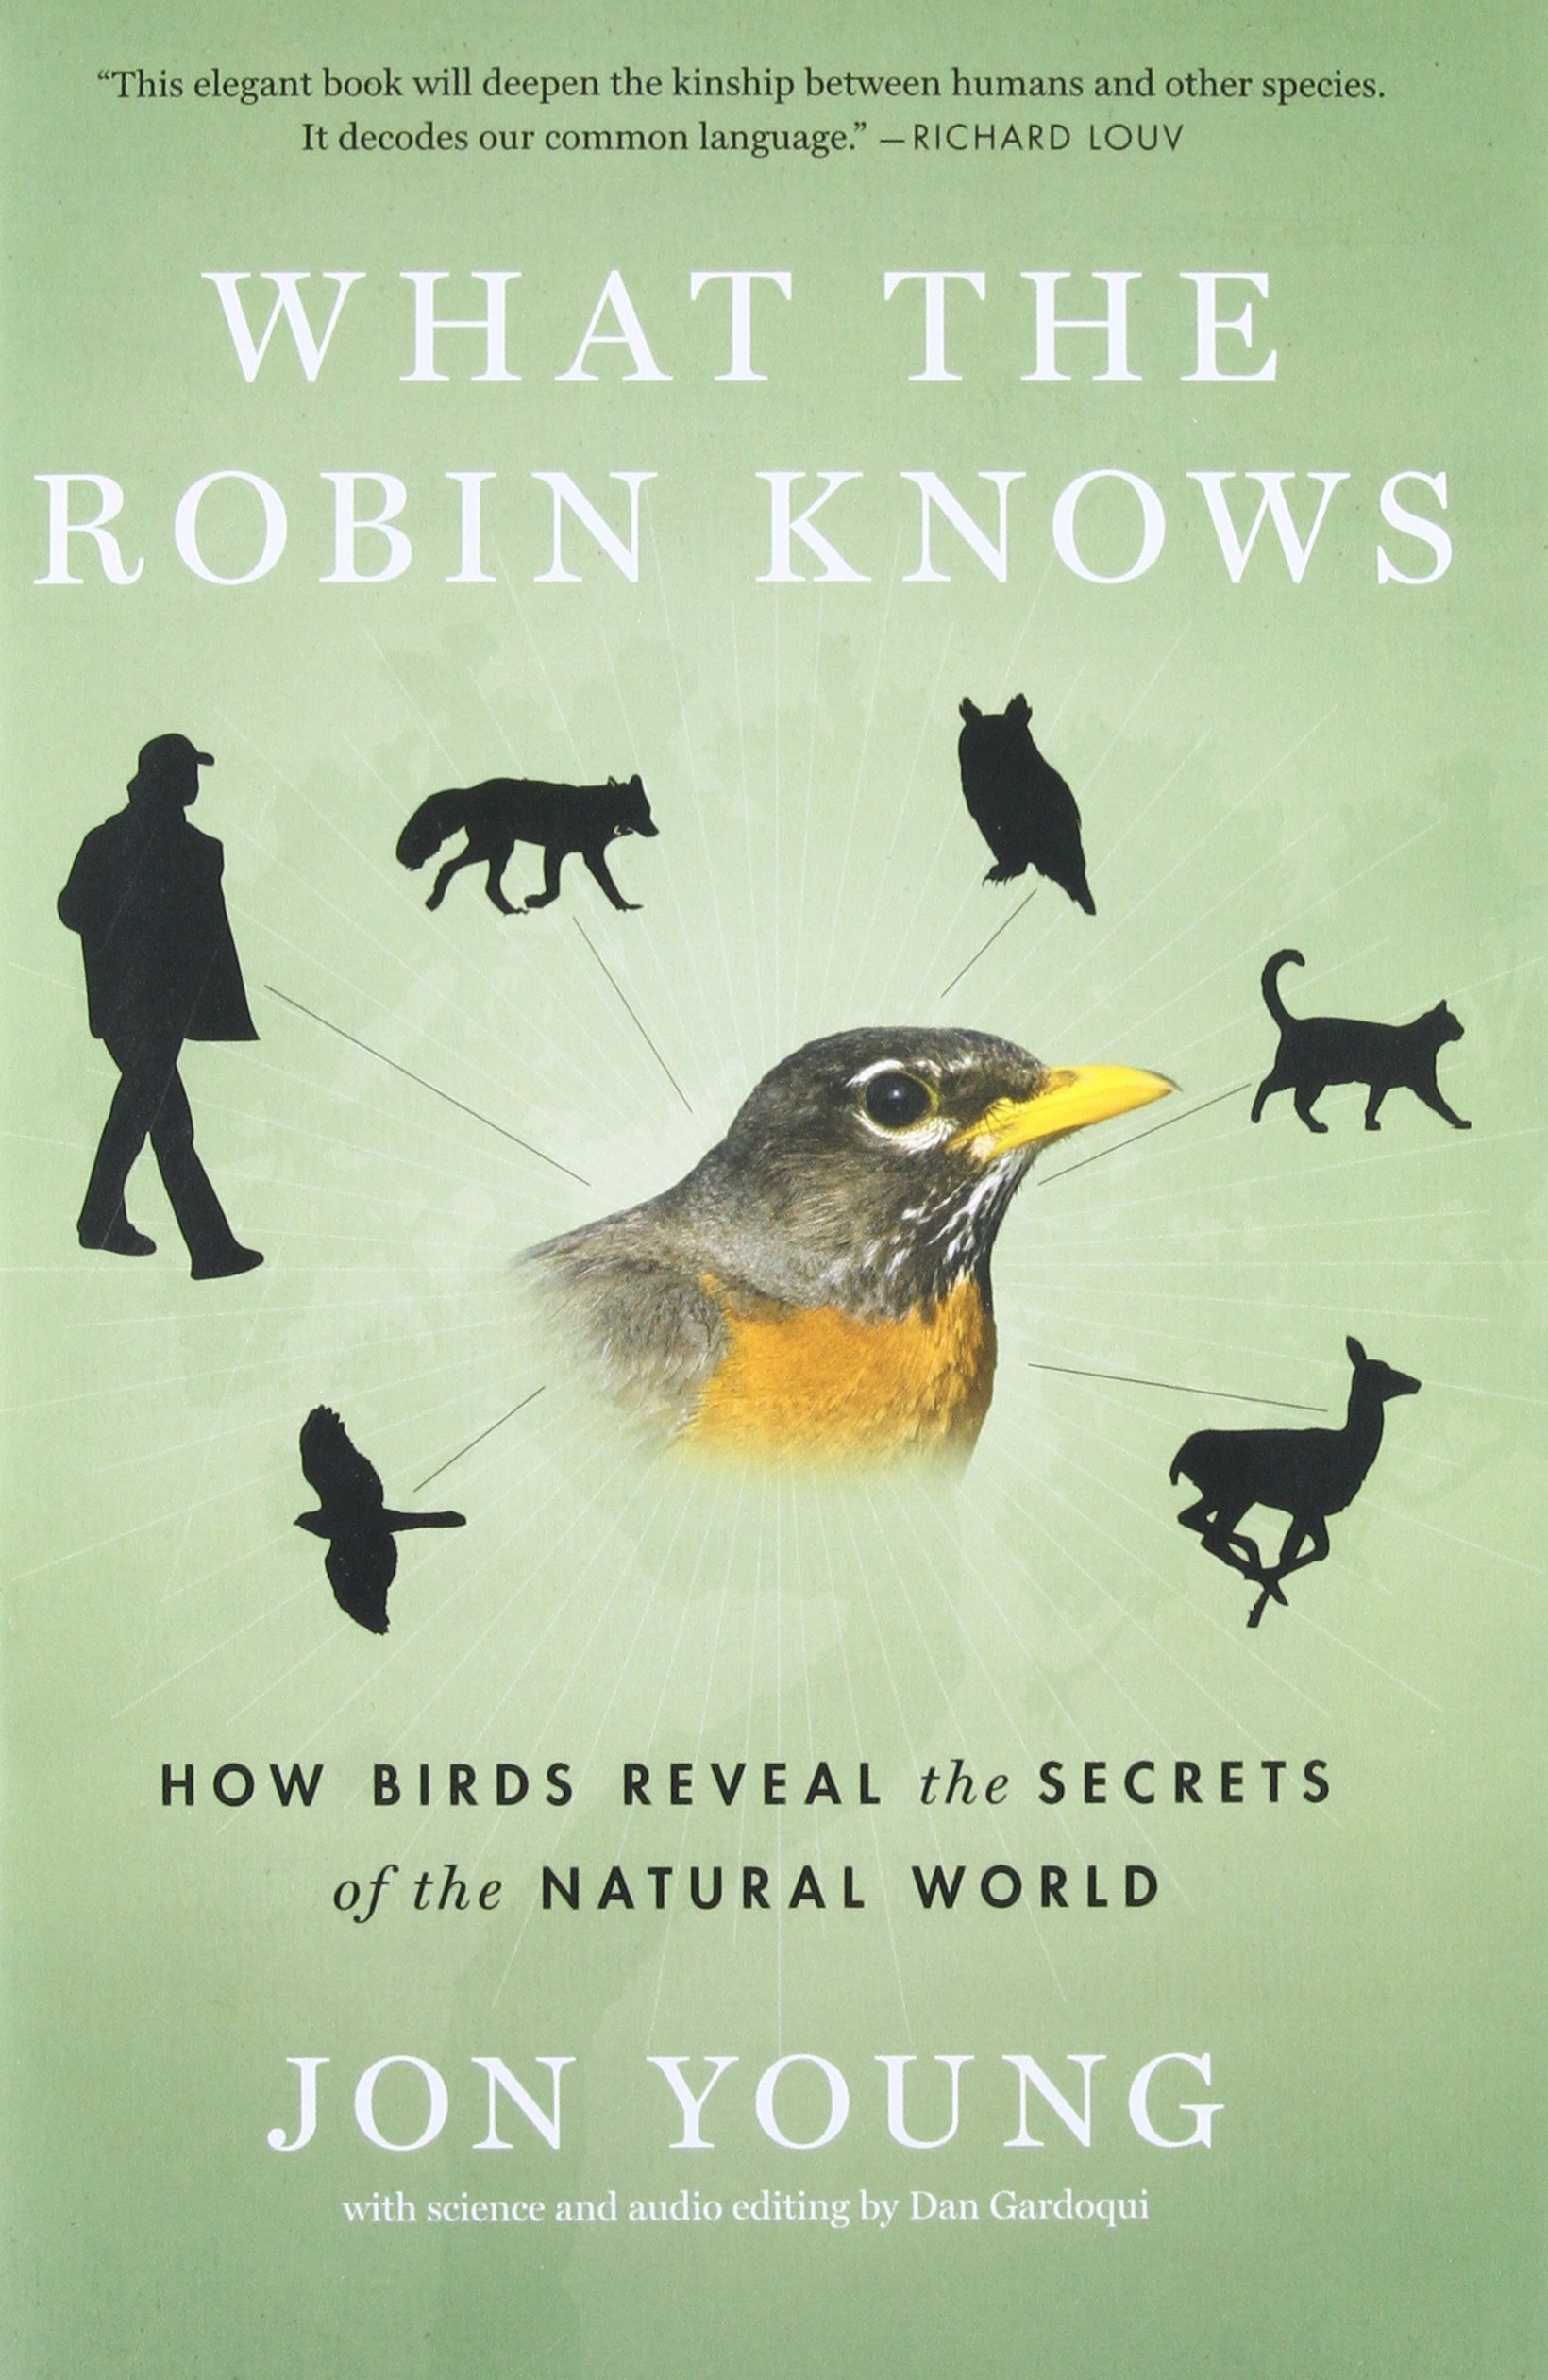 Image OfWhat The Robin Knows: How Birds Reveal The Secrets Of The Natural World